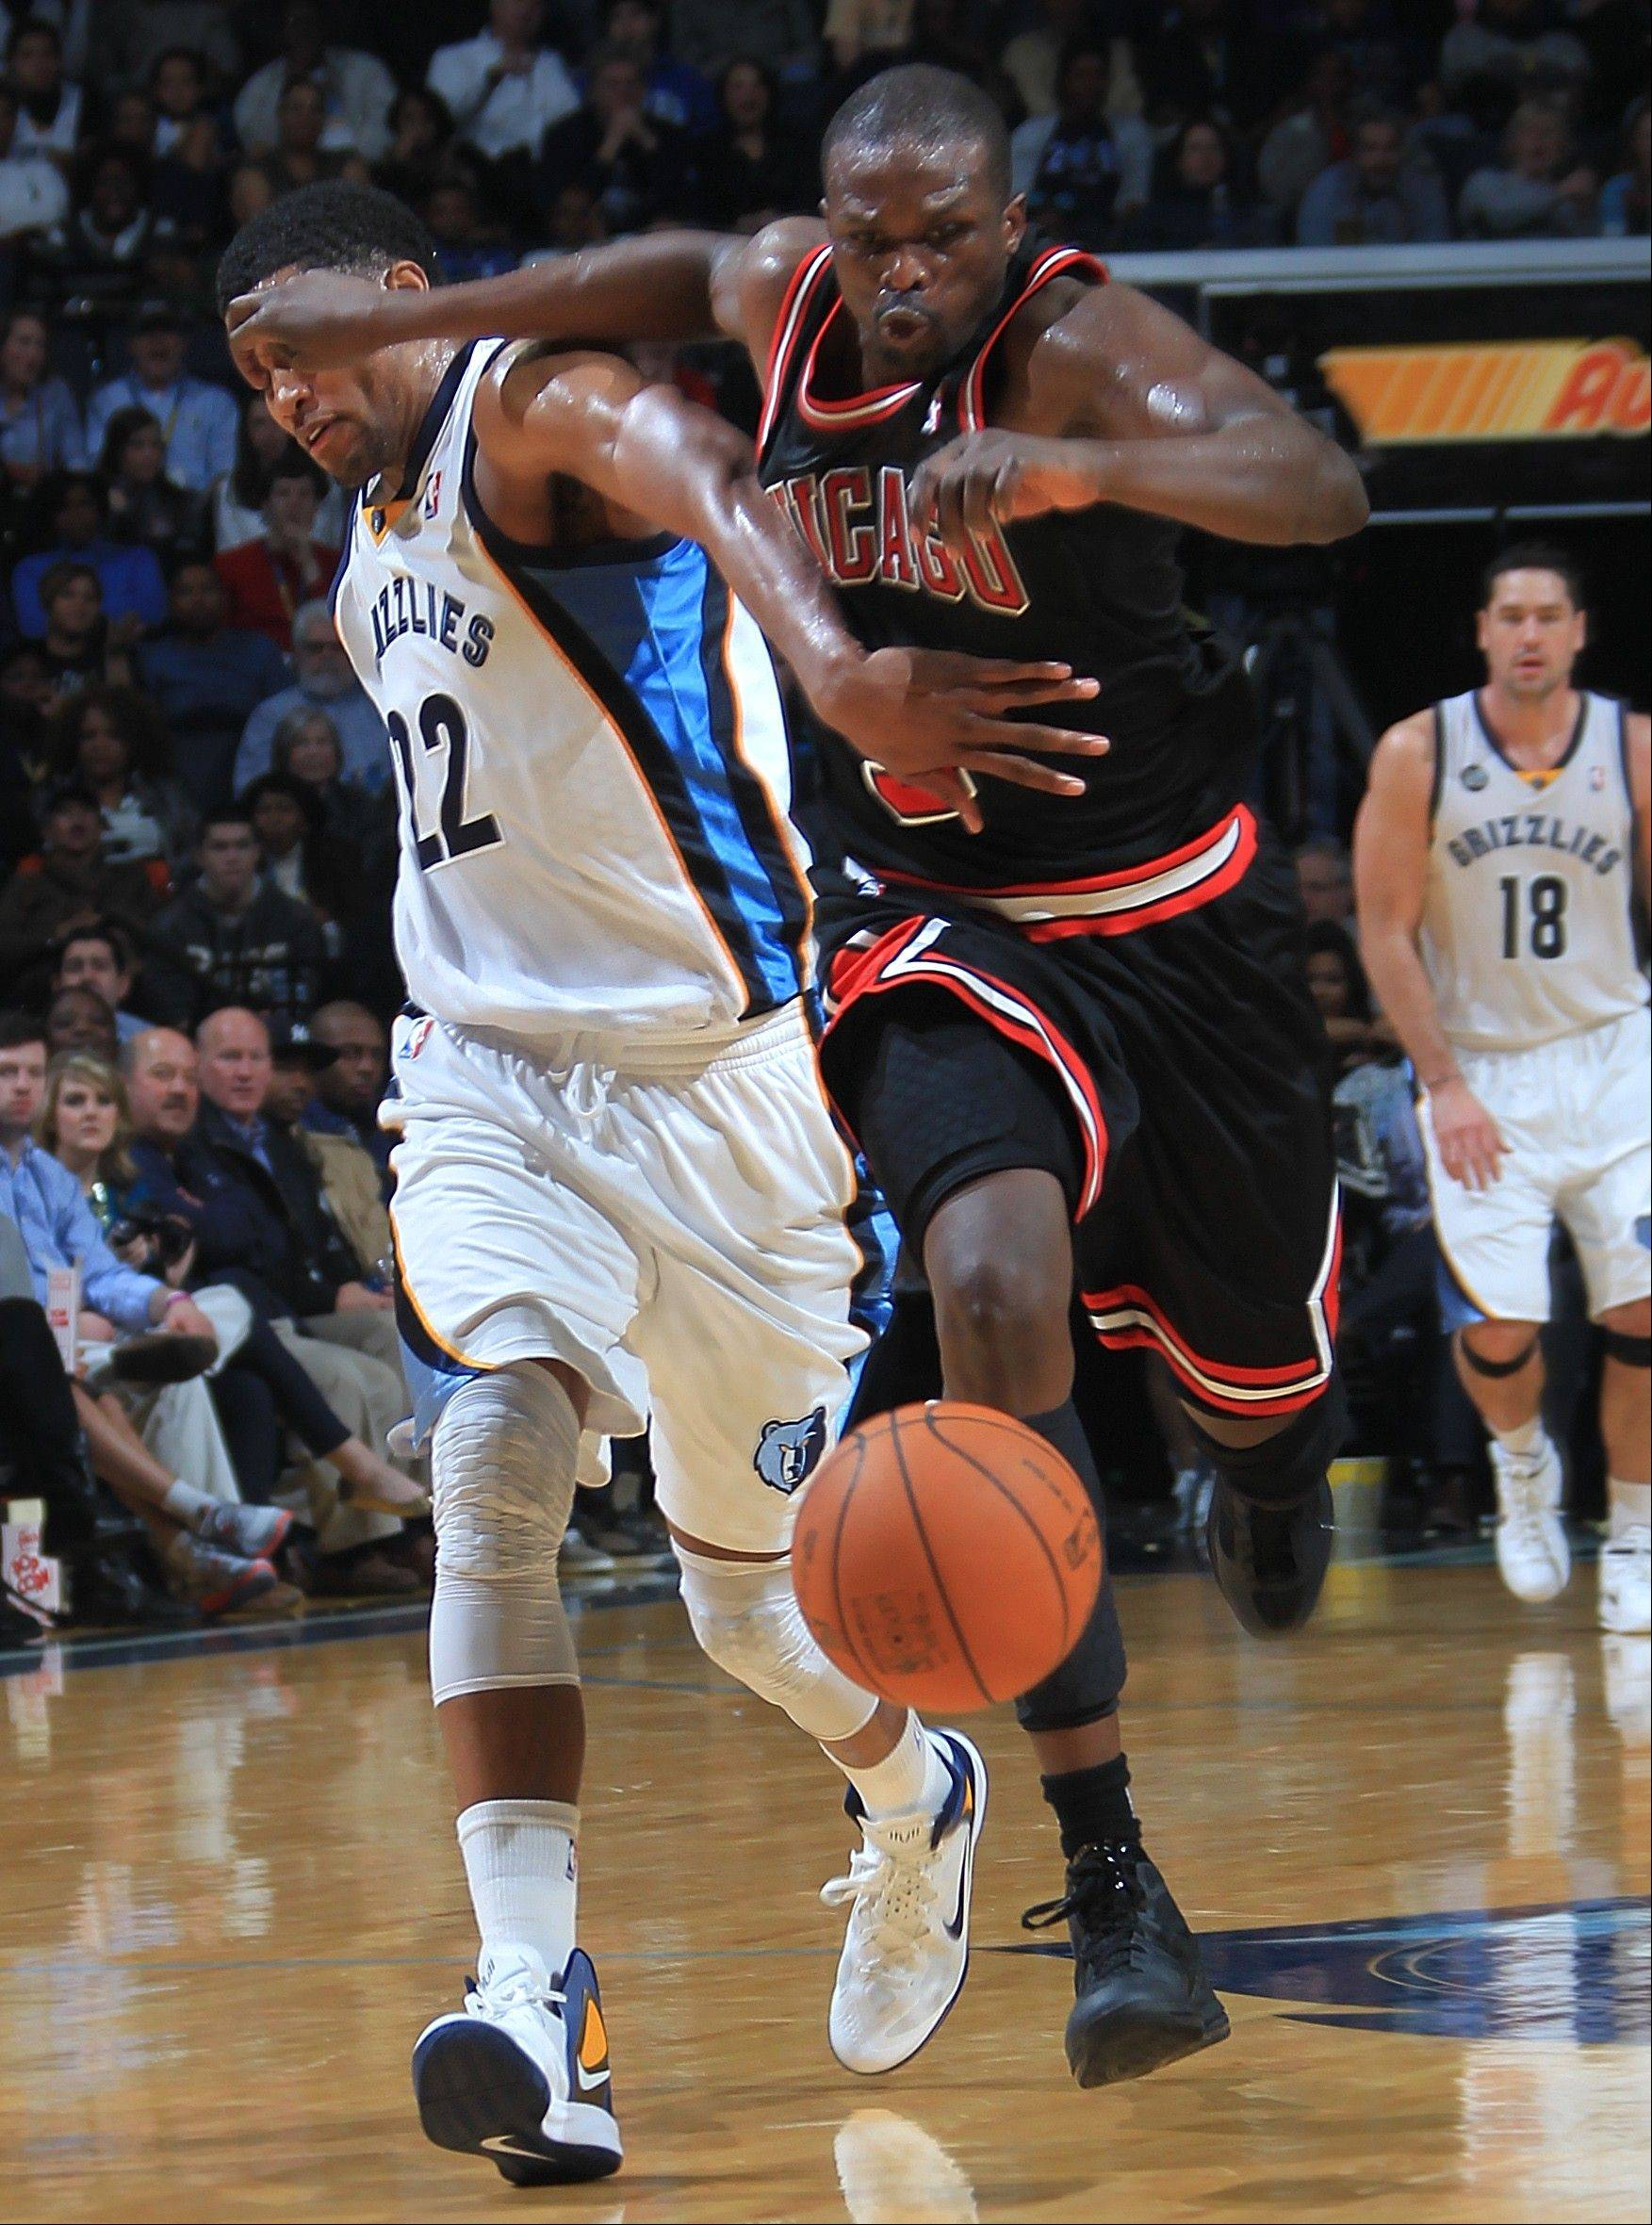 Grizzlies forward Rudy Gay, left, and Bulls forward Luol Deng chase down a loose ball in the second half Monday in Memphis, Tenn. The Grizzlies defeated the Bulls 102-86.